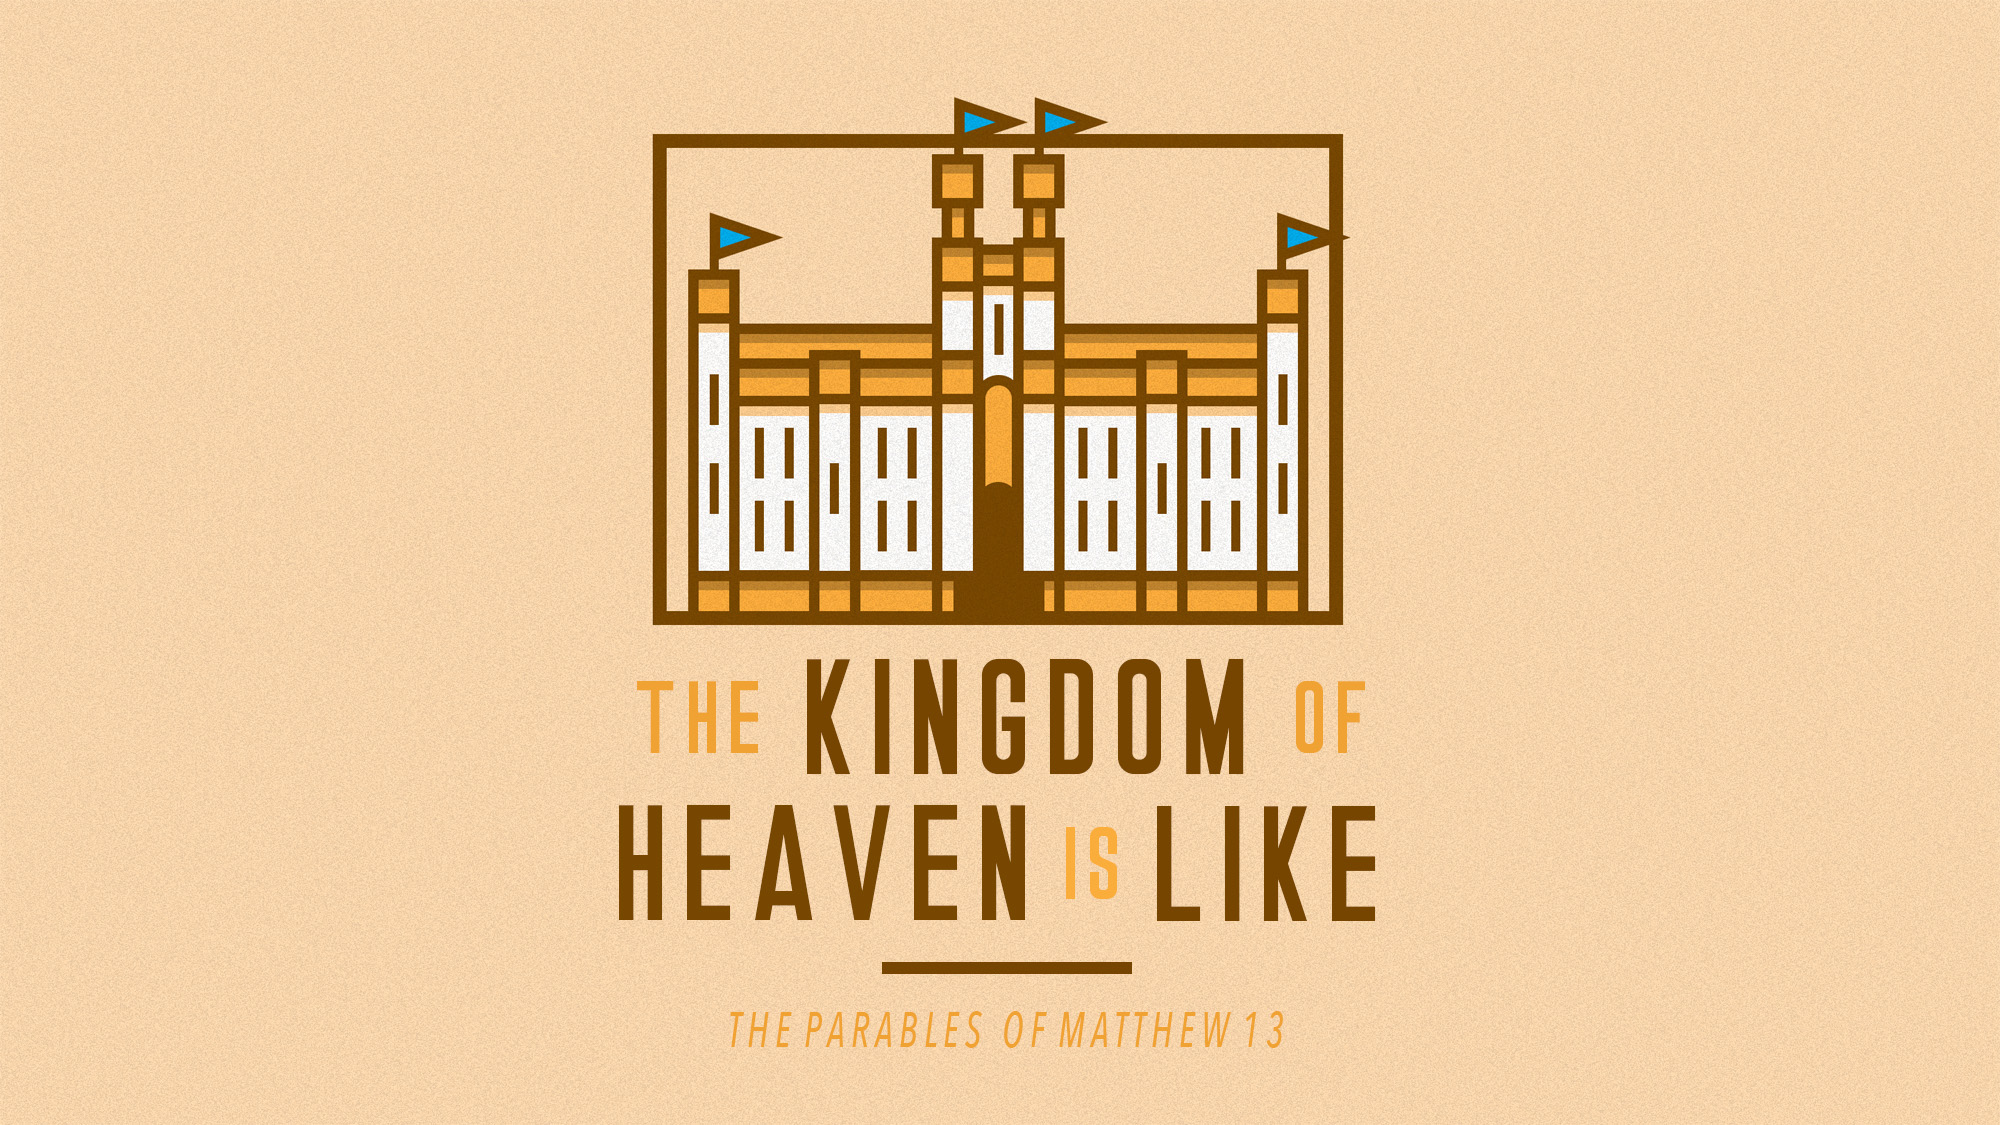 The Kingdom of Heaven is Like - The parables of Matthew 13